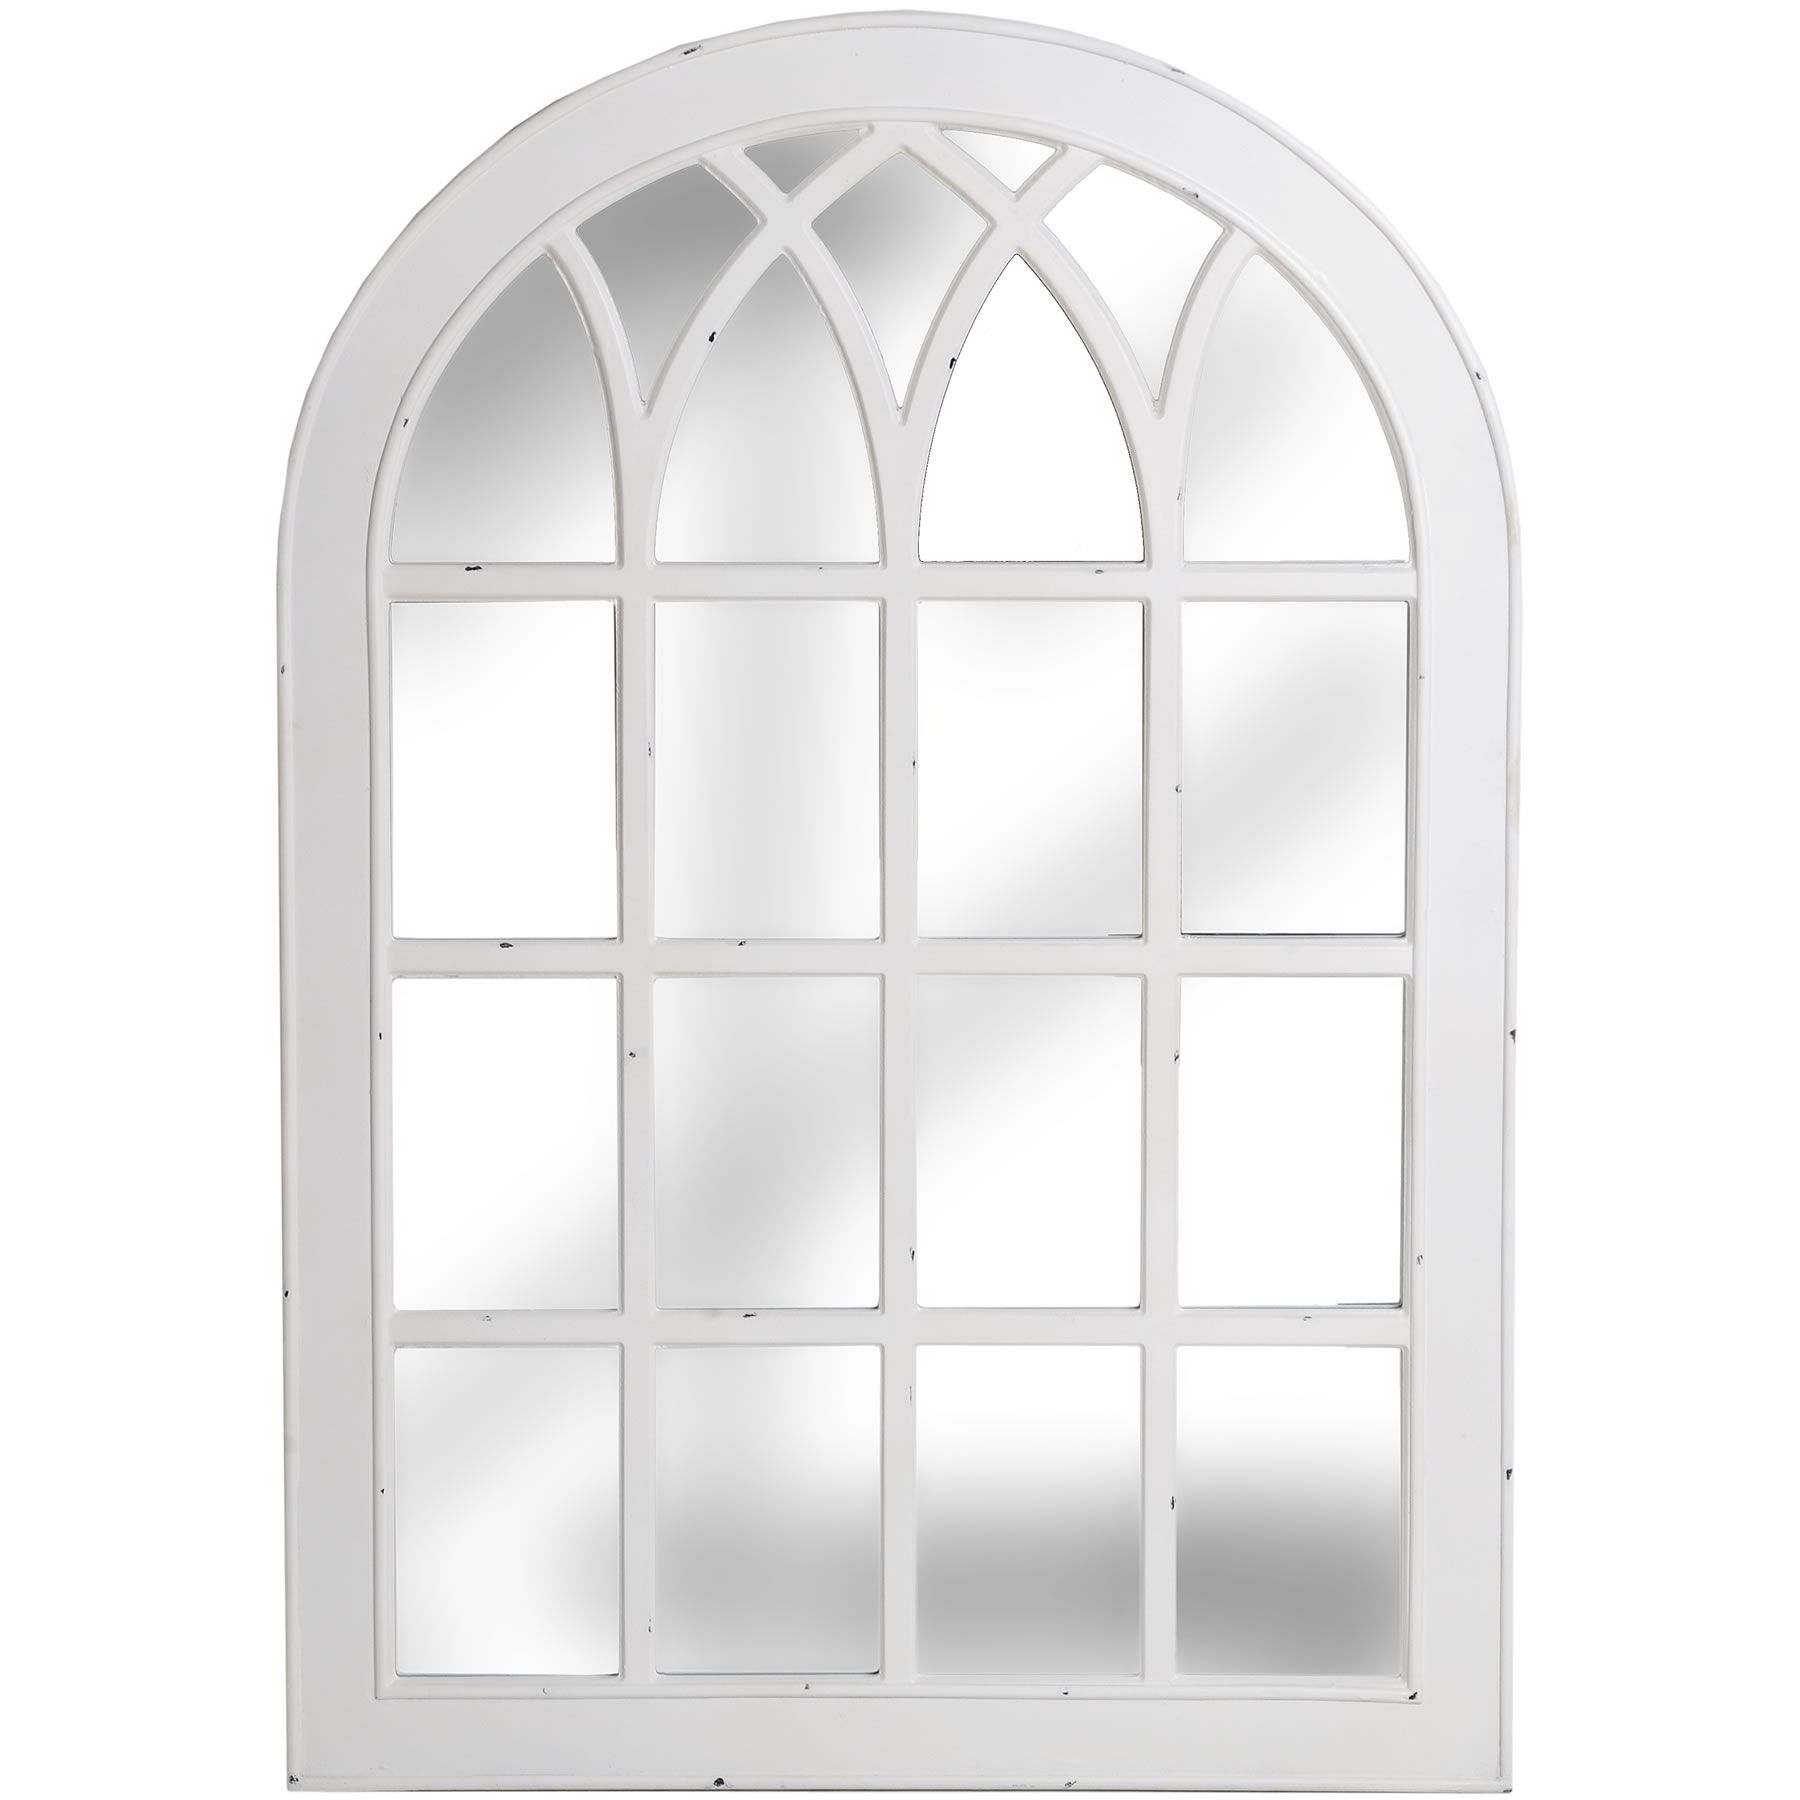 Antique White Arched Window Mirror  Melody Maison